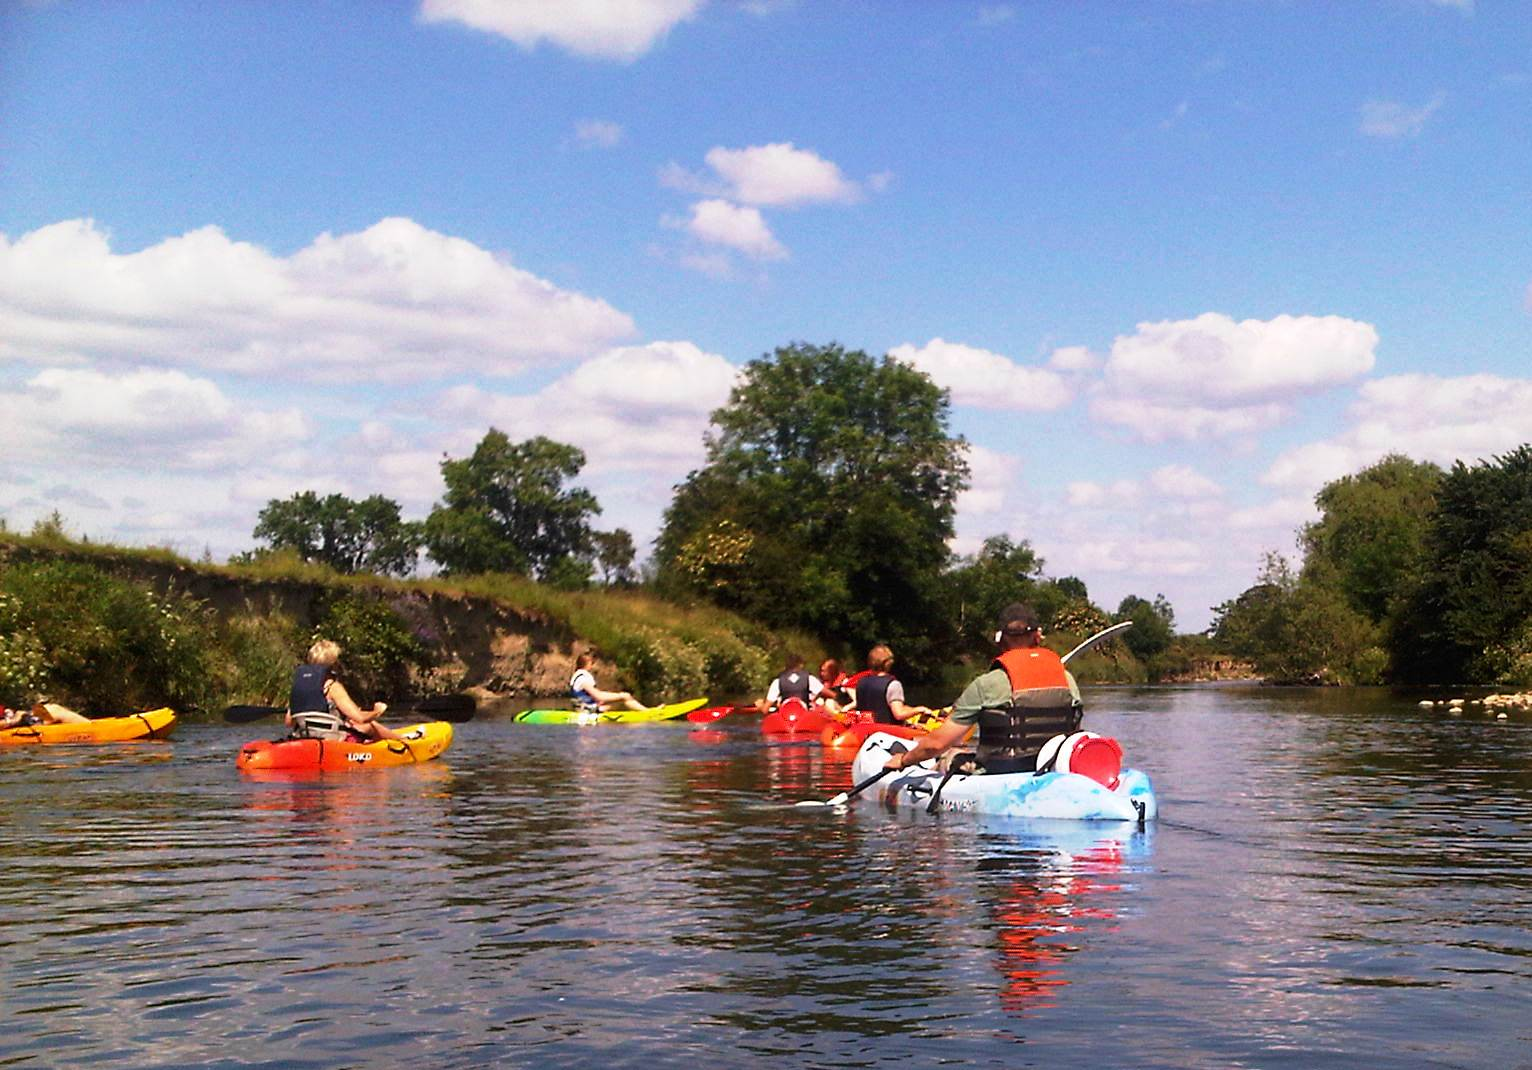 kayaking 22062014 022.jpg